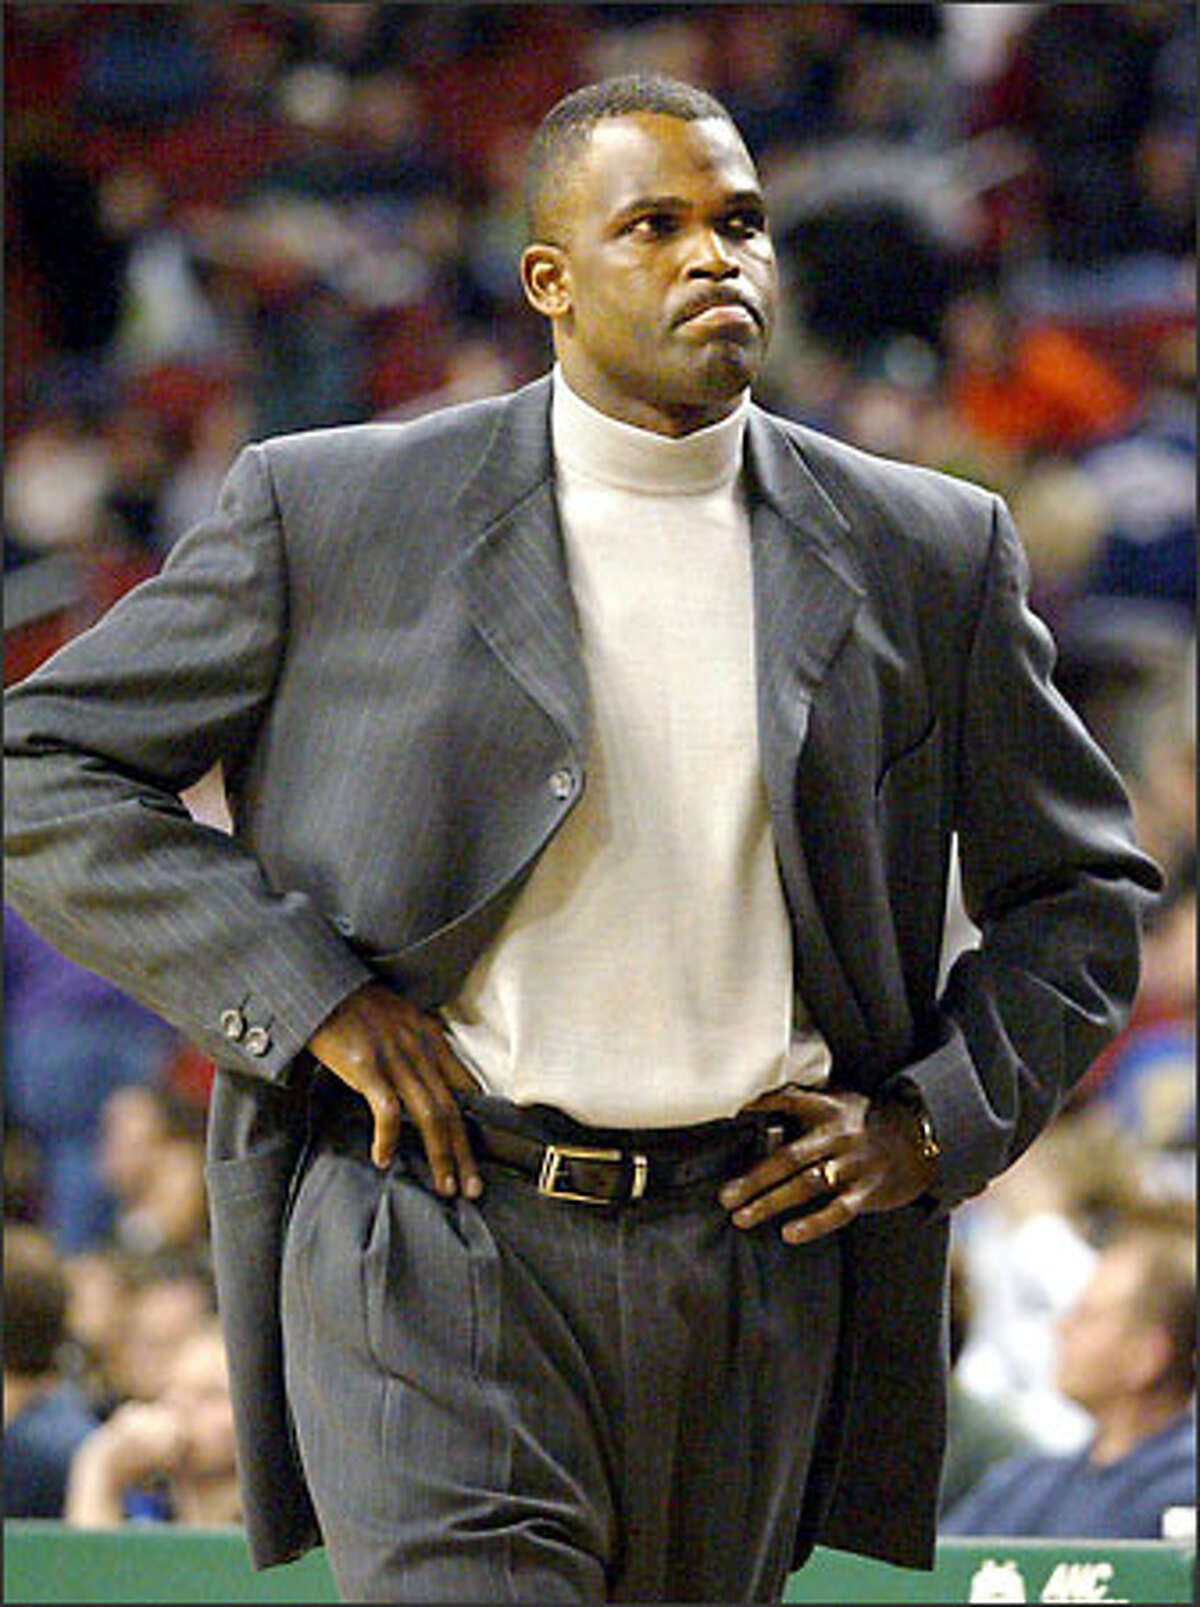 Sonics coach Nate McMillan walks off the court at the end of the game against the Cleveland Cavaliers. Cleveland won 87-79, handing the Sonics their fifth consecutive loss.